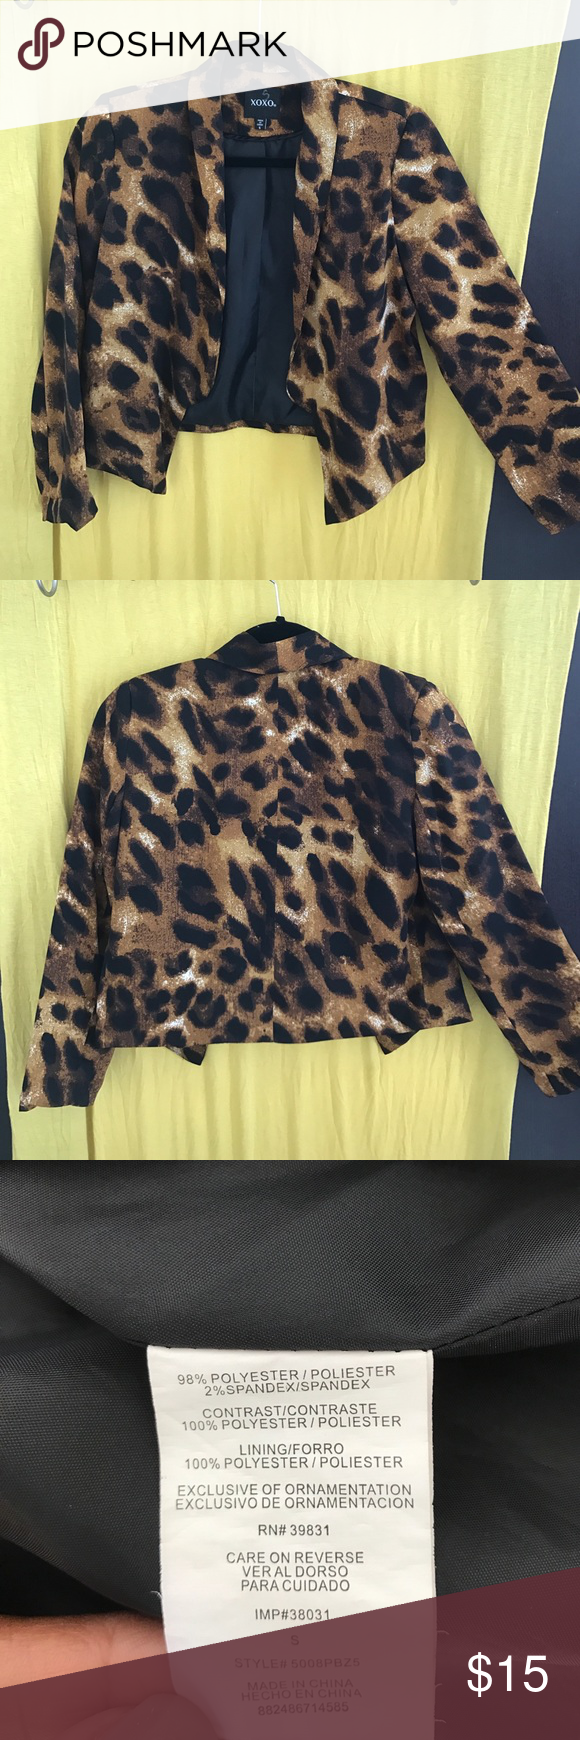 Blazer Cute animal print blazer! XOXO Jackets & Coats Blazers